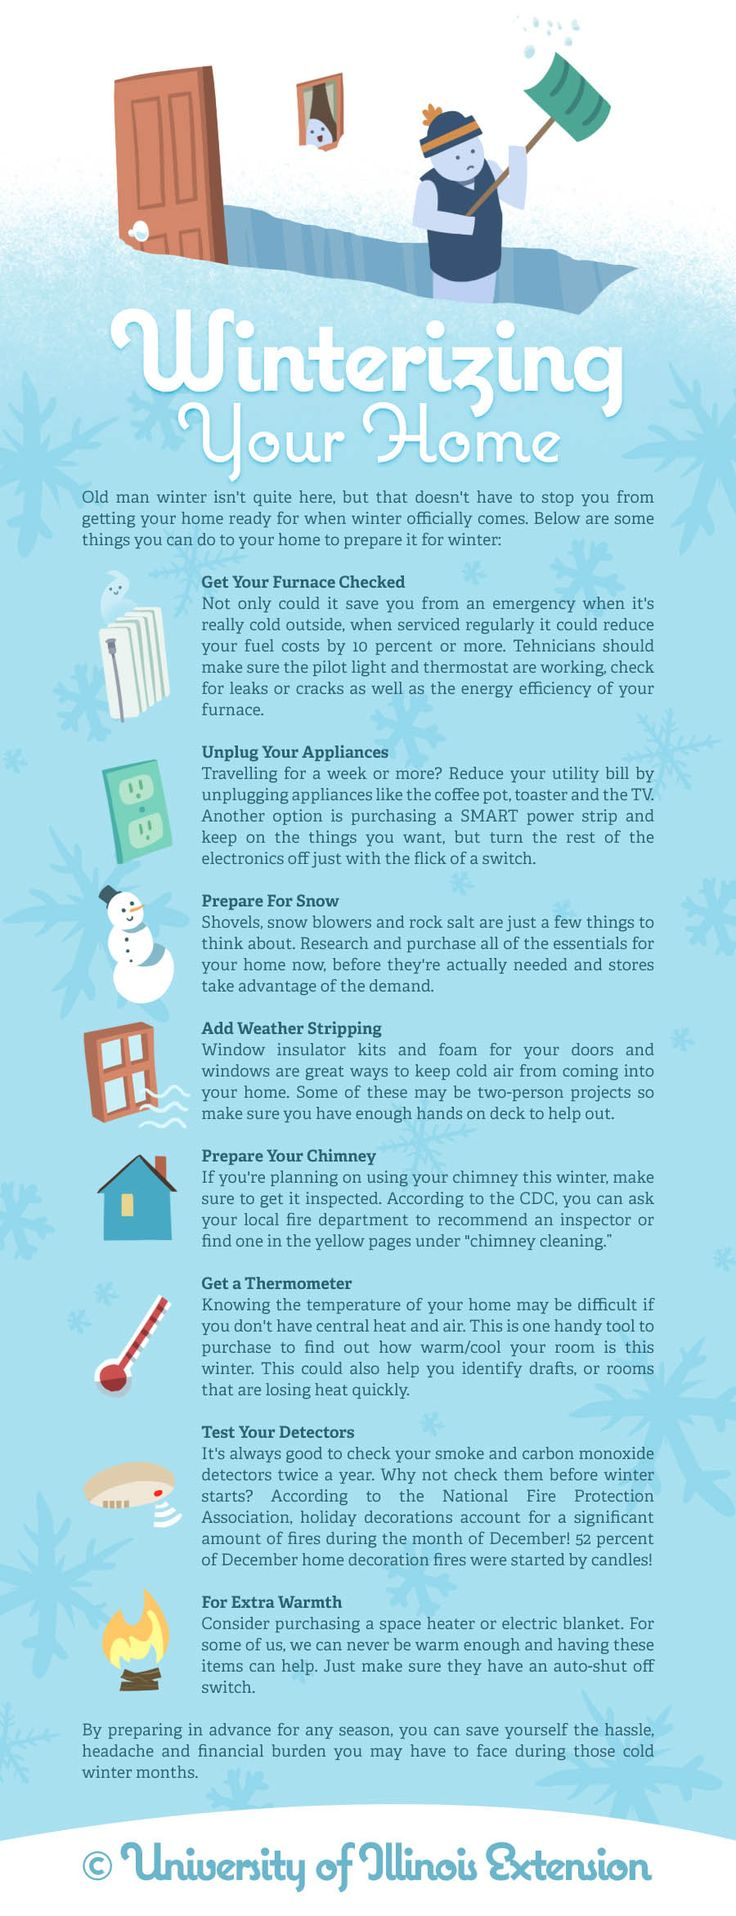 8 tips for preparing your home for winter.